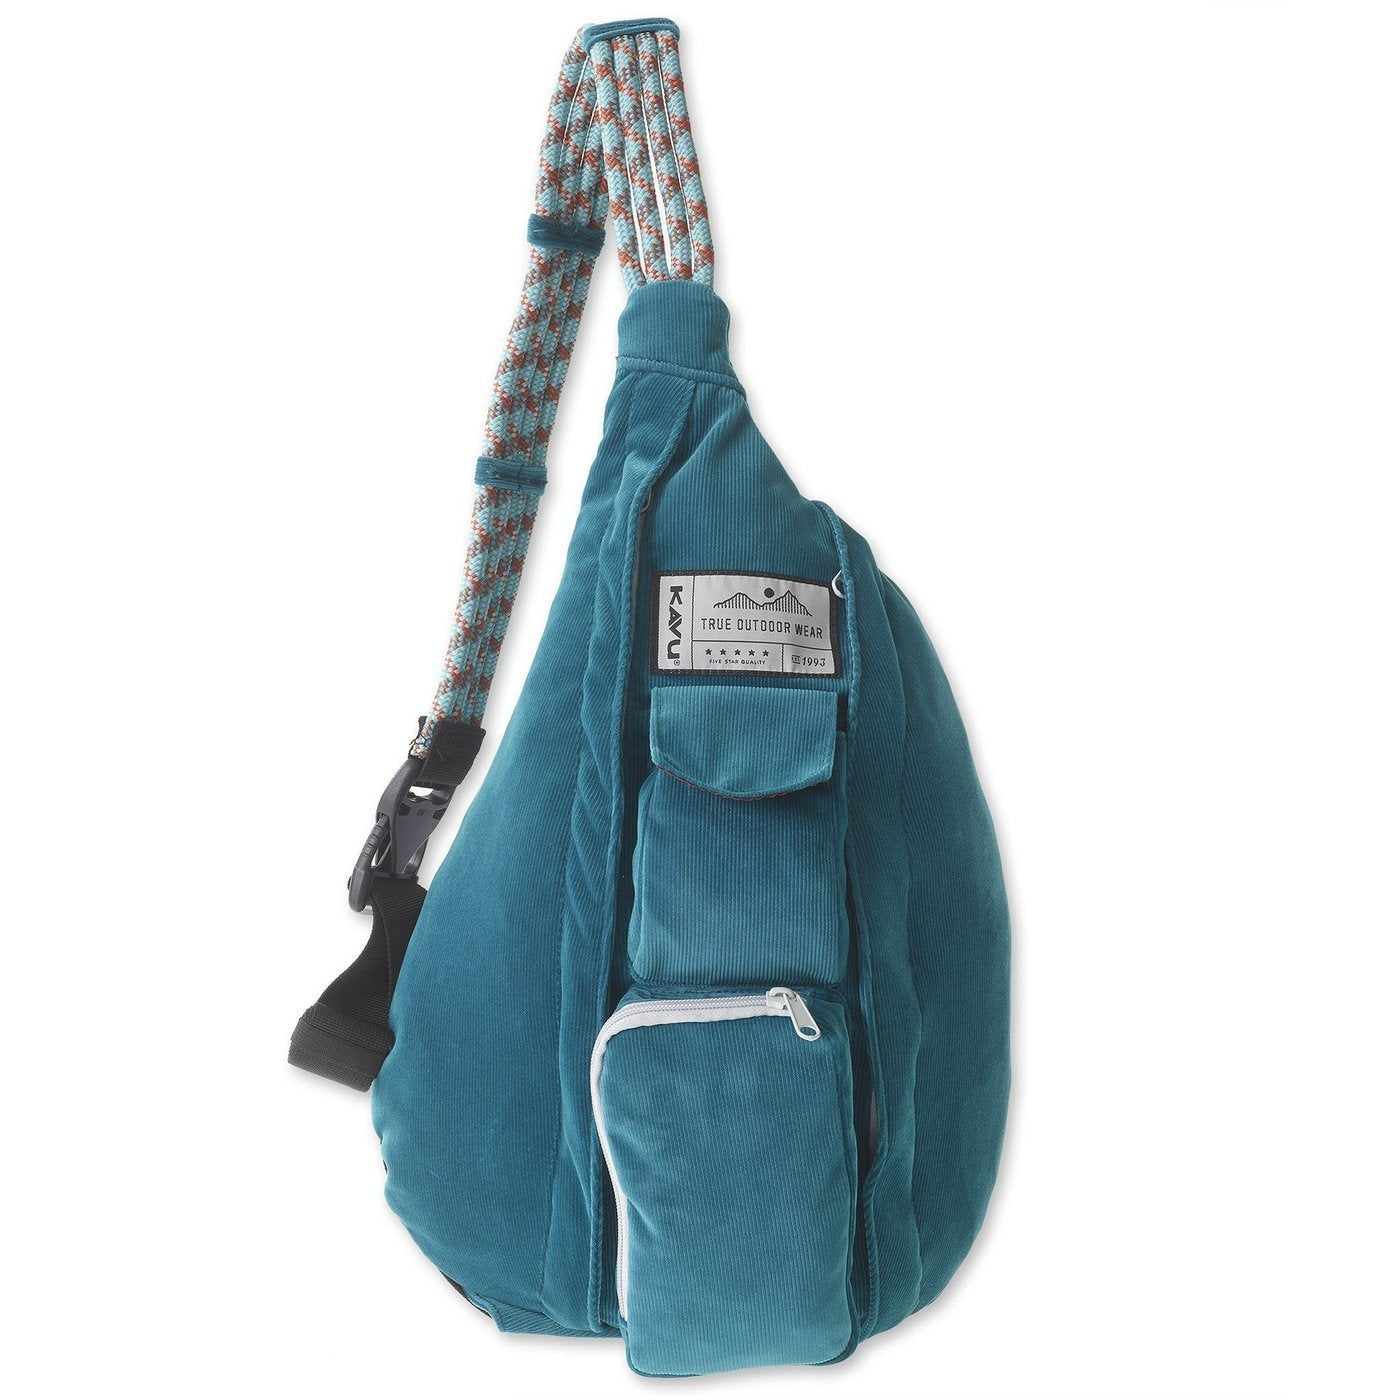 Kavu Back Packs ARTIC TEAL / one size Kavu Rope Cord Back Pack - Arctic Teal || David's Clothing 92191068